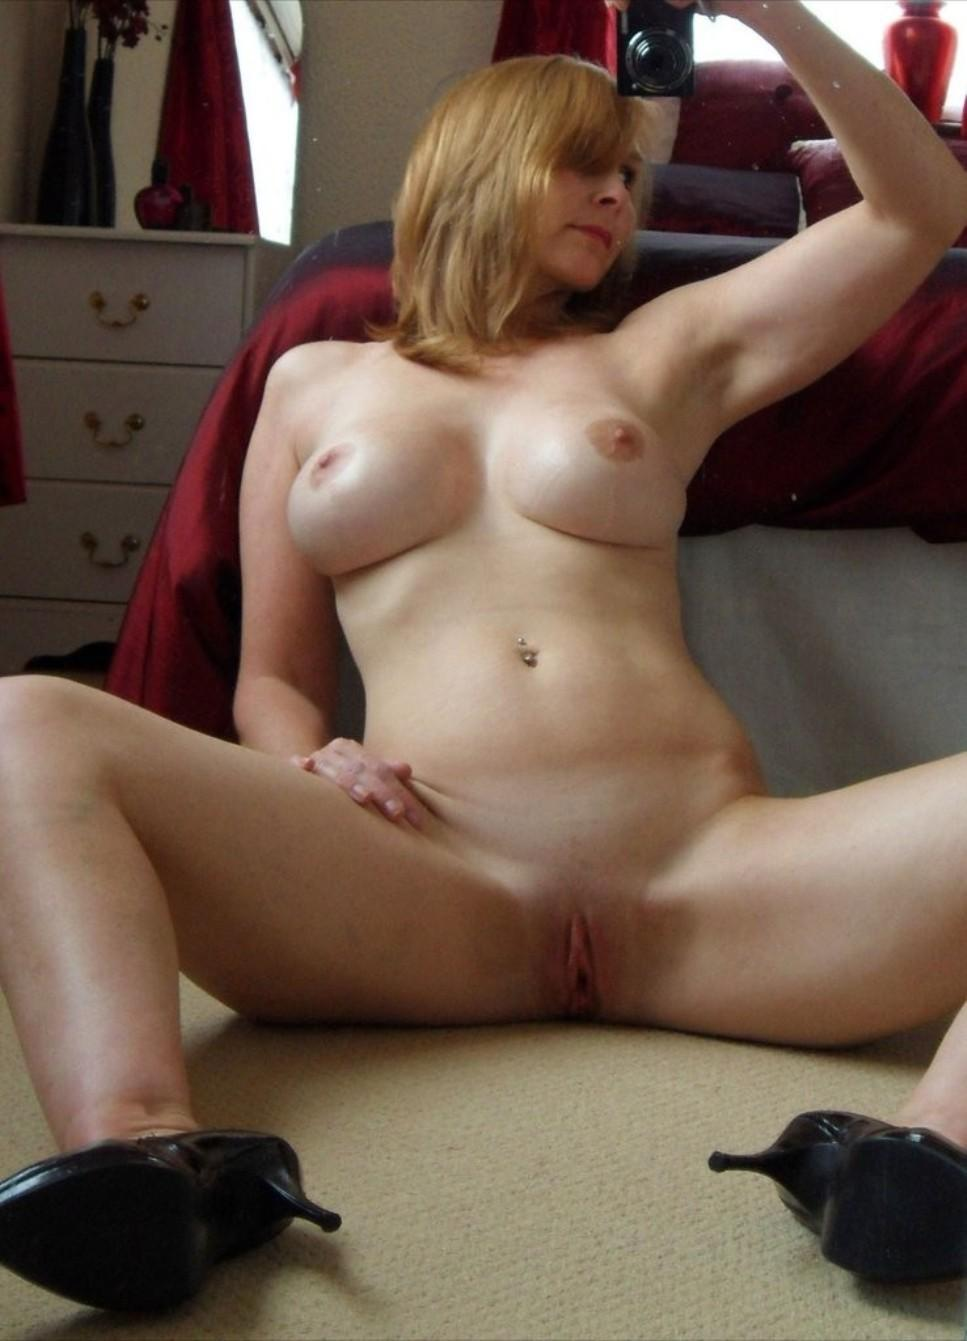 wild hardcore dirty blonde fucks black Amateur, Cougar, Cunt, Housewife, Housewive, Lingerie, Mature, Milf, Mom, Nude, Pussy, Wife, Wives